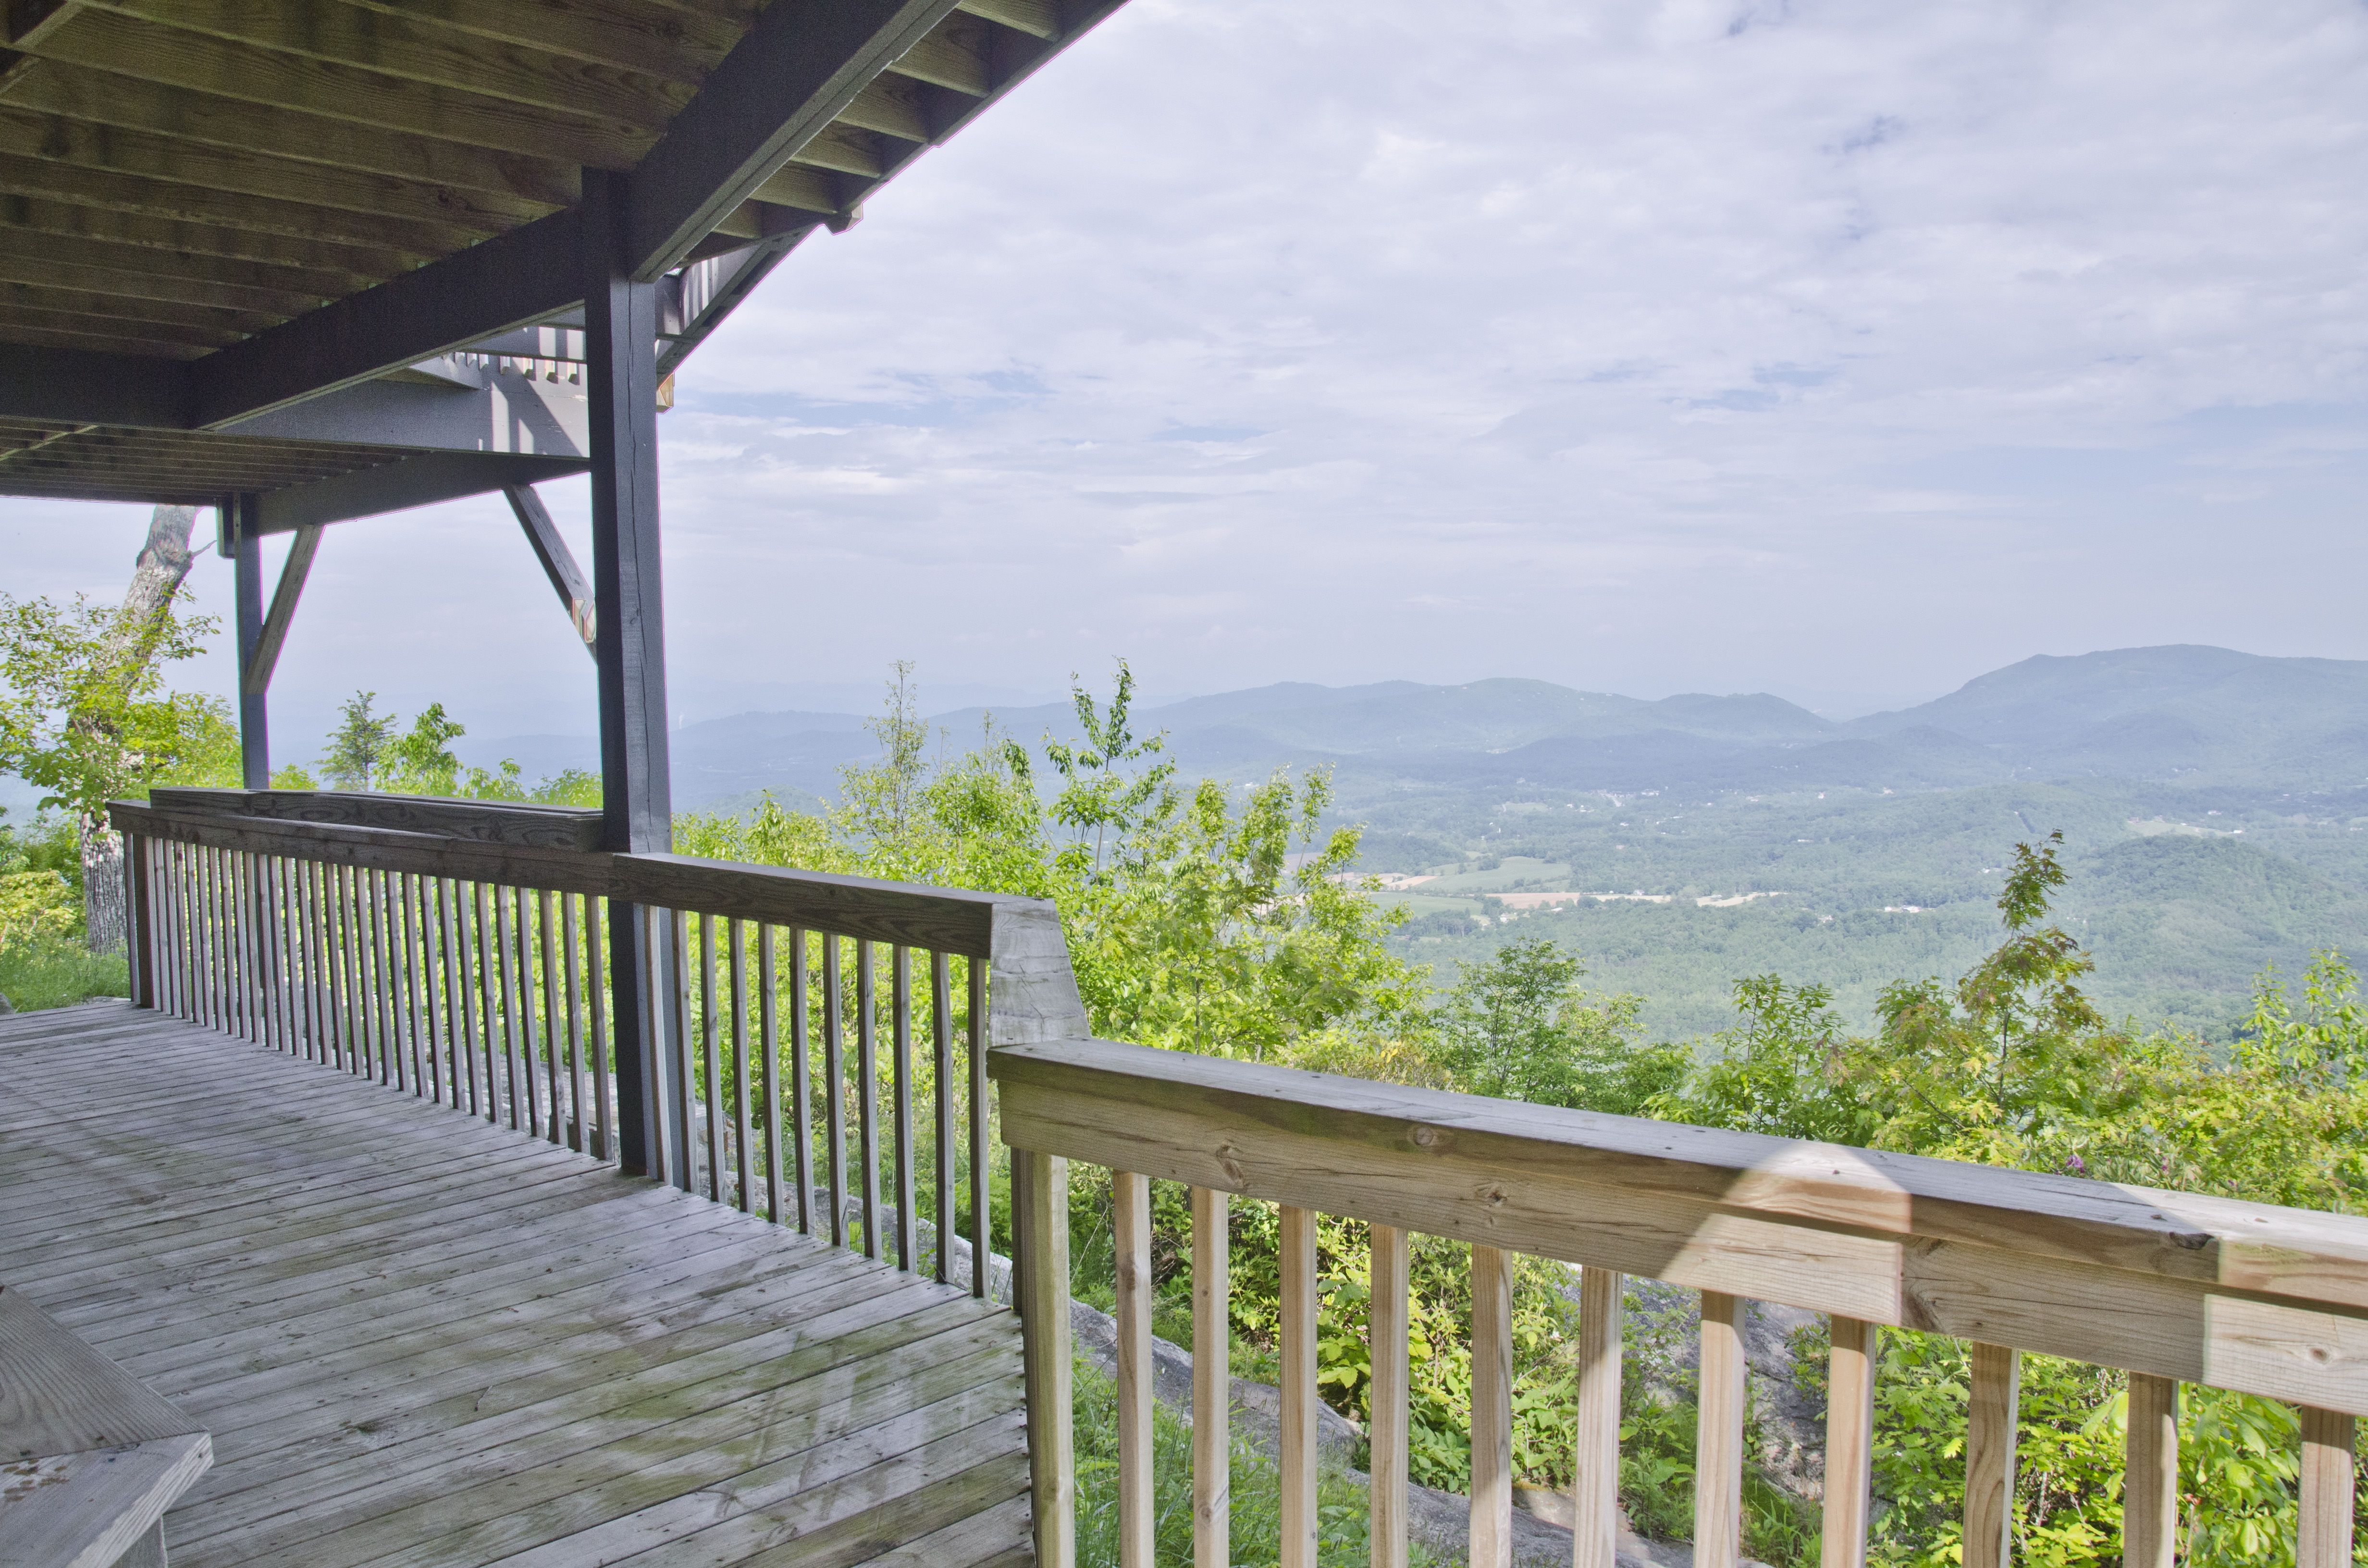 263 Crystal Falls; Fairview, NC 28730 Property, Nice